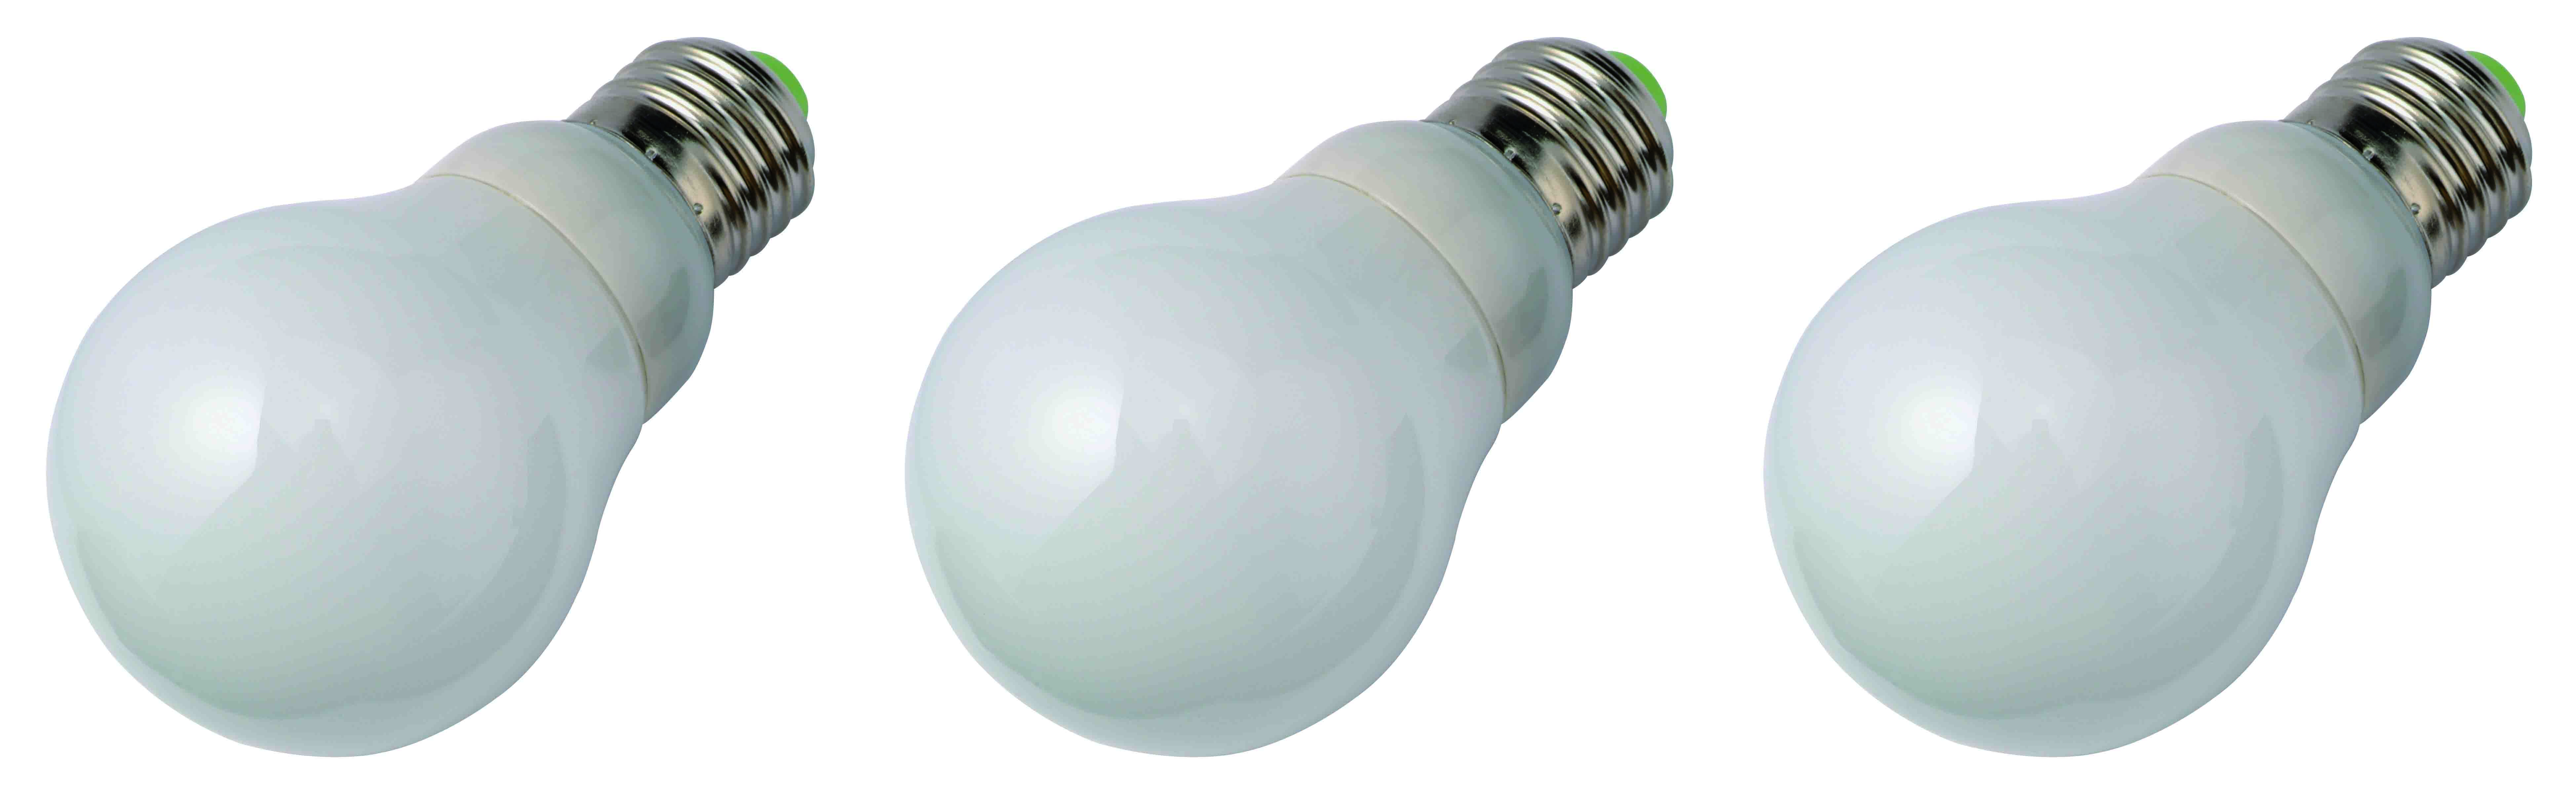 Compact fluorescent kogel E27 7W 3 pieces